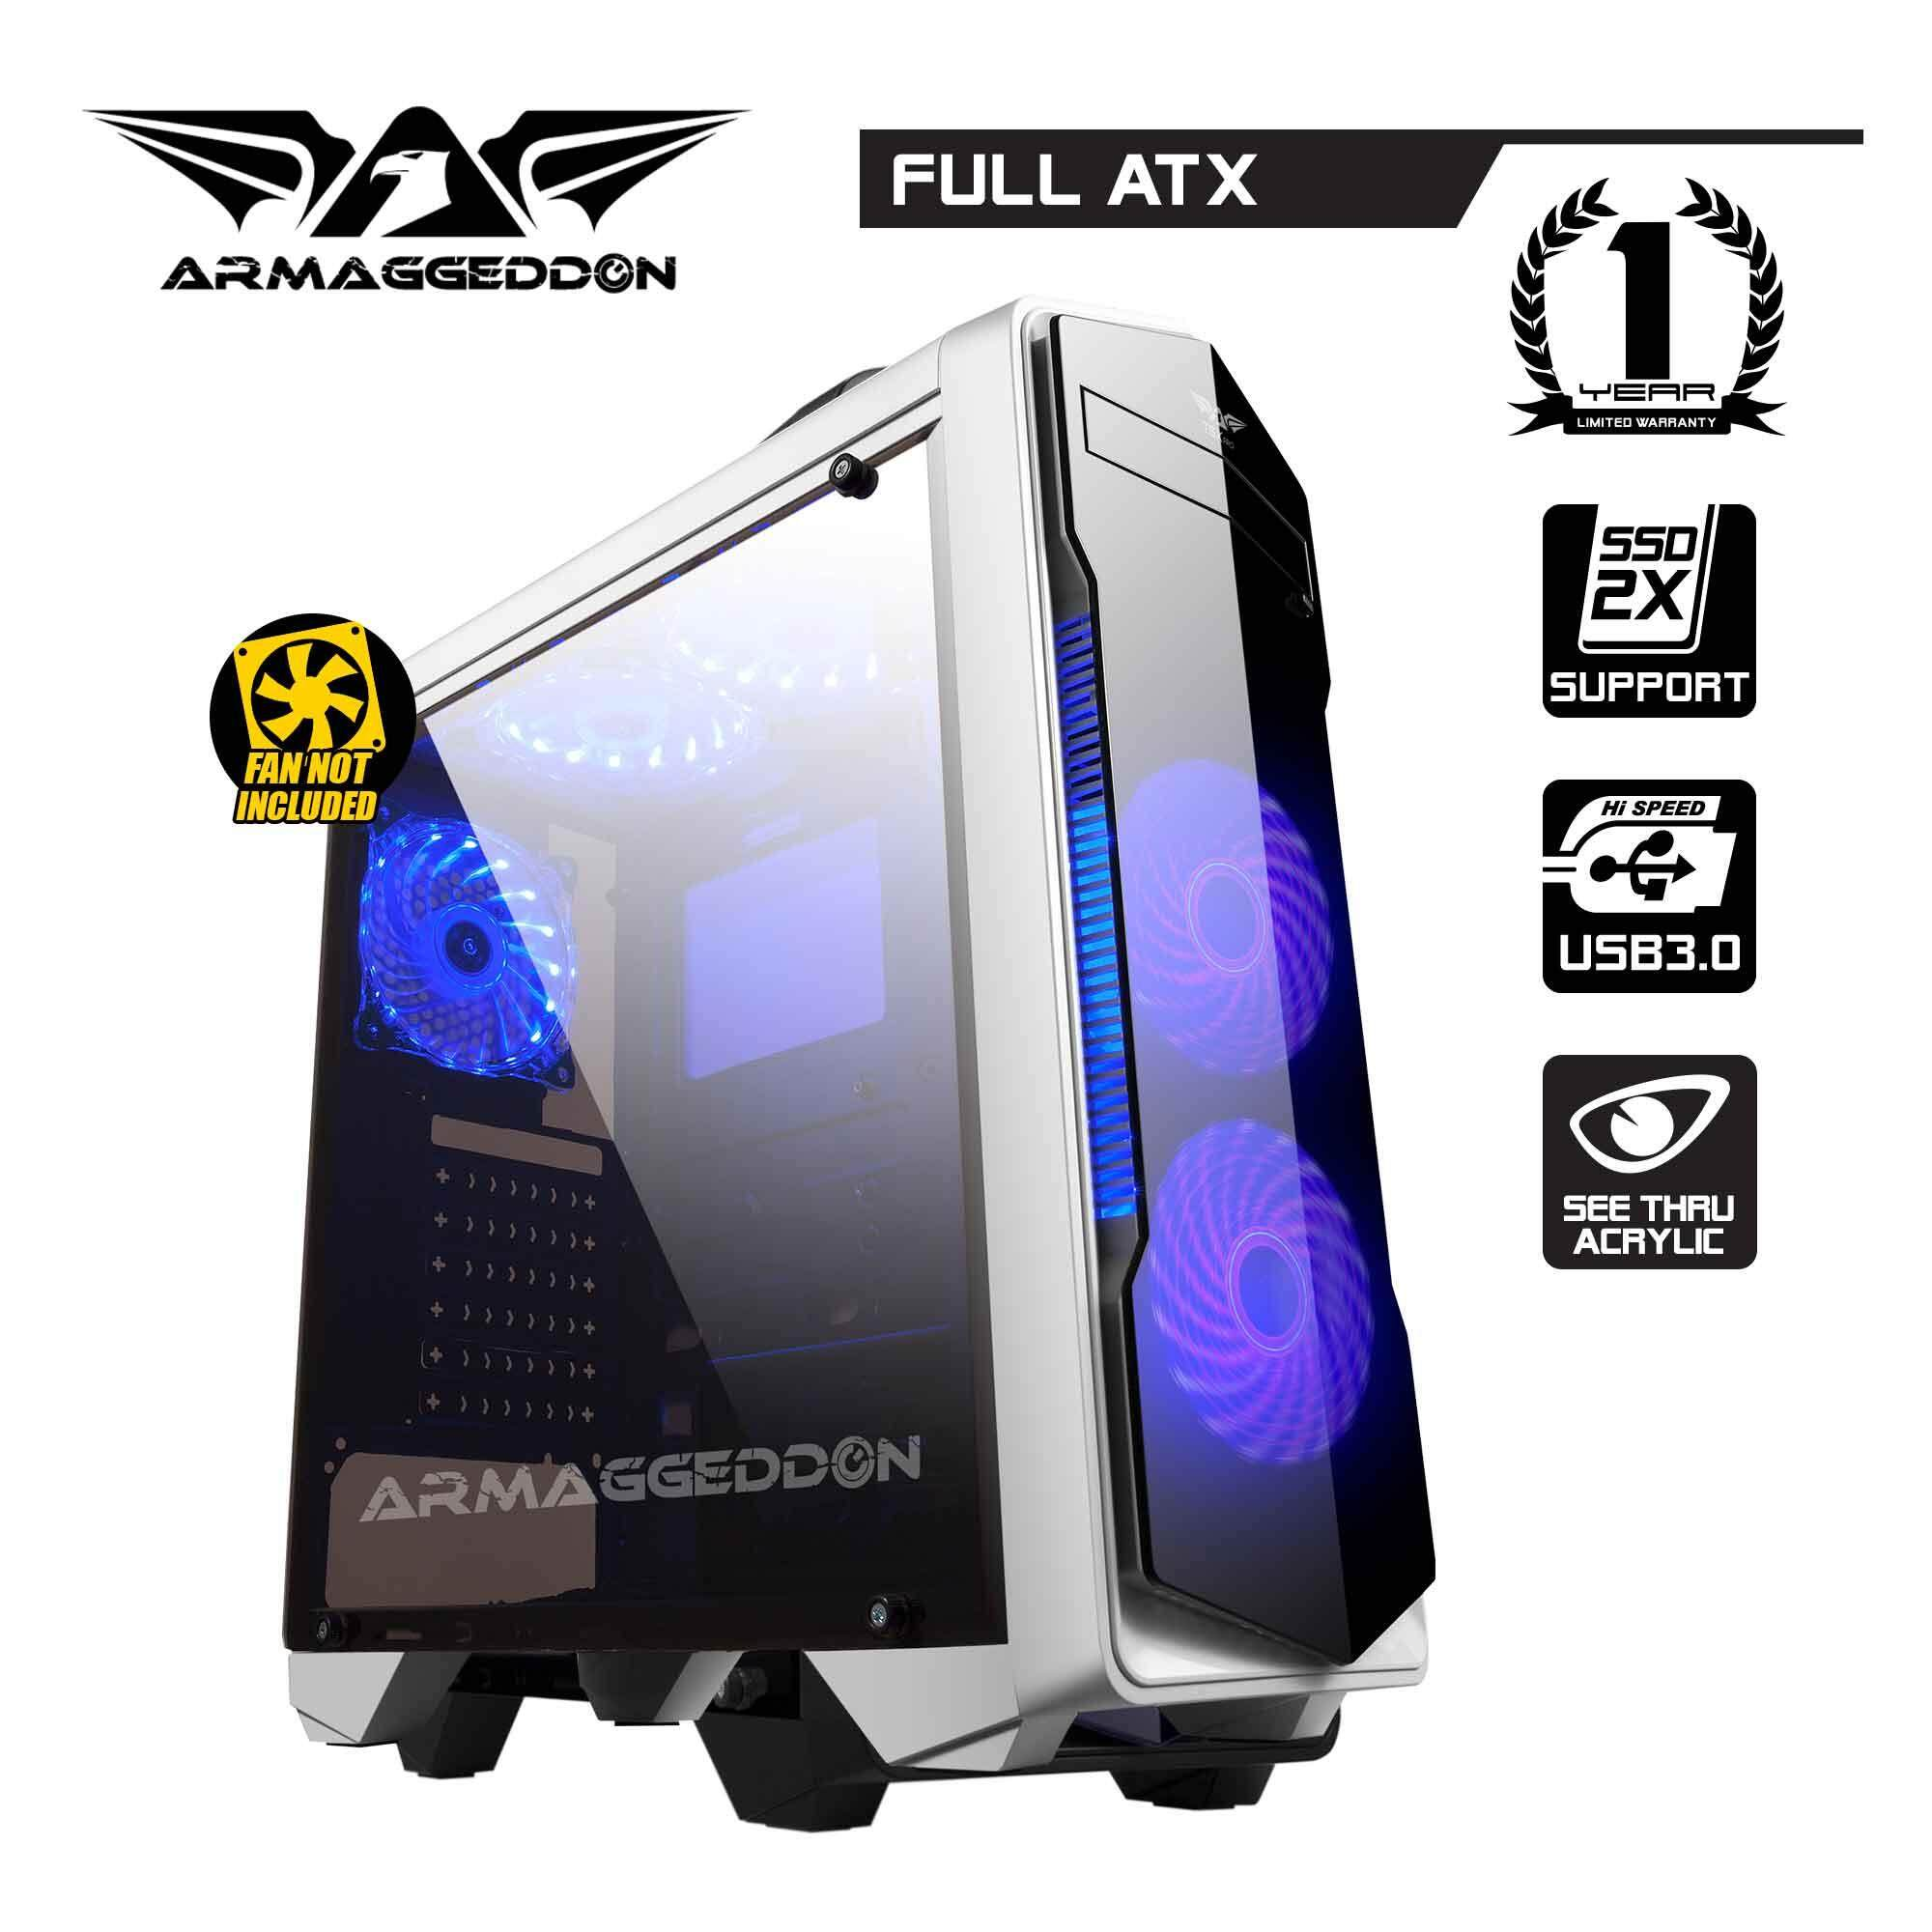 Armaggeddon T5x Pro Full ATX - Smart Gaming Structure PC Chassis Malaysia